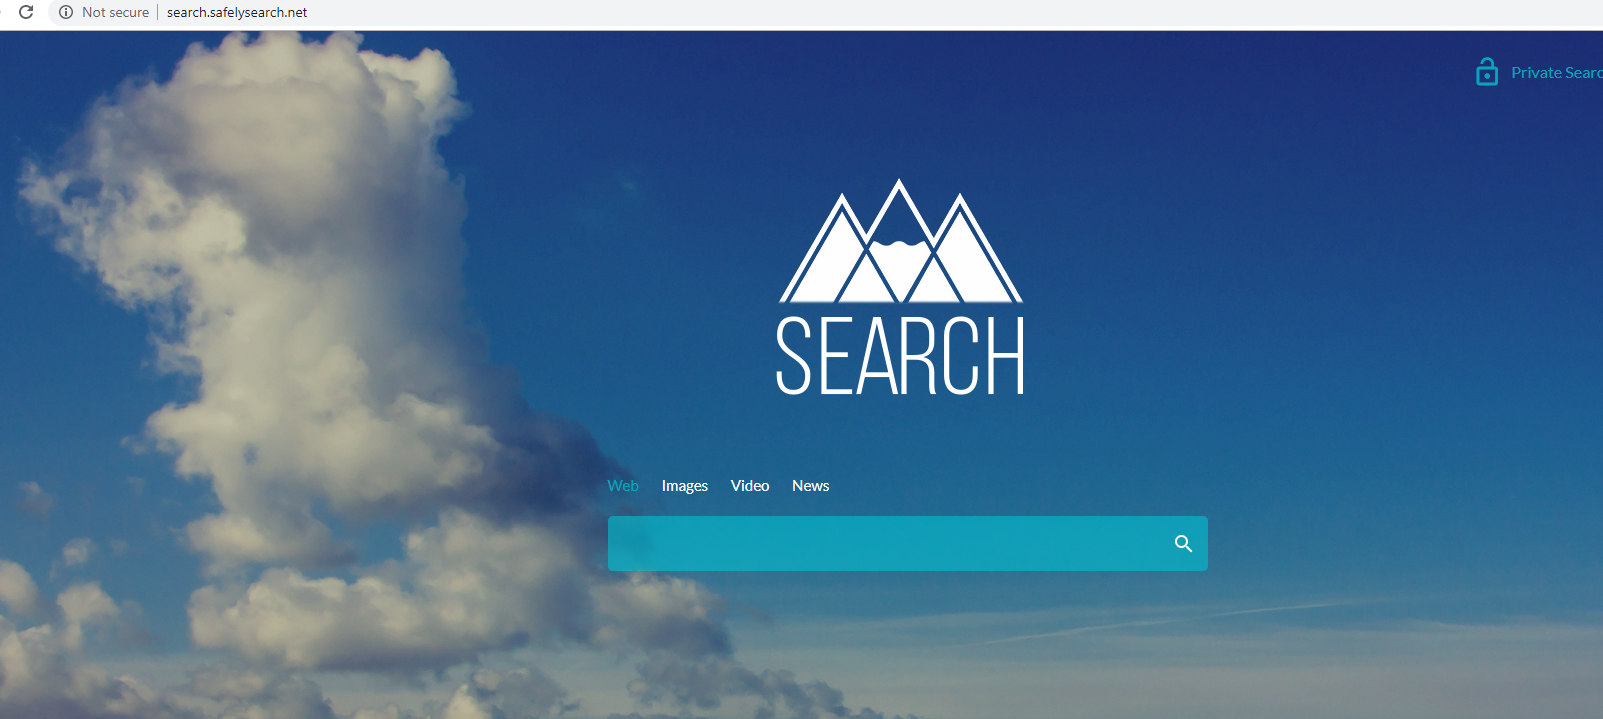 Como eliminar Search.safelysearch.net